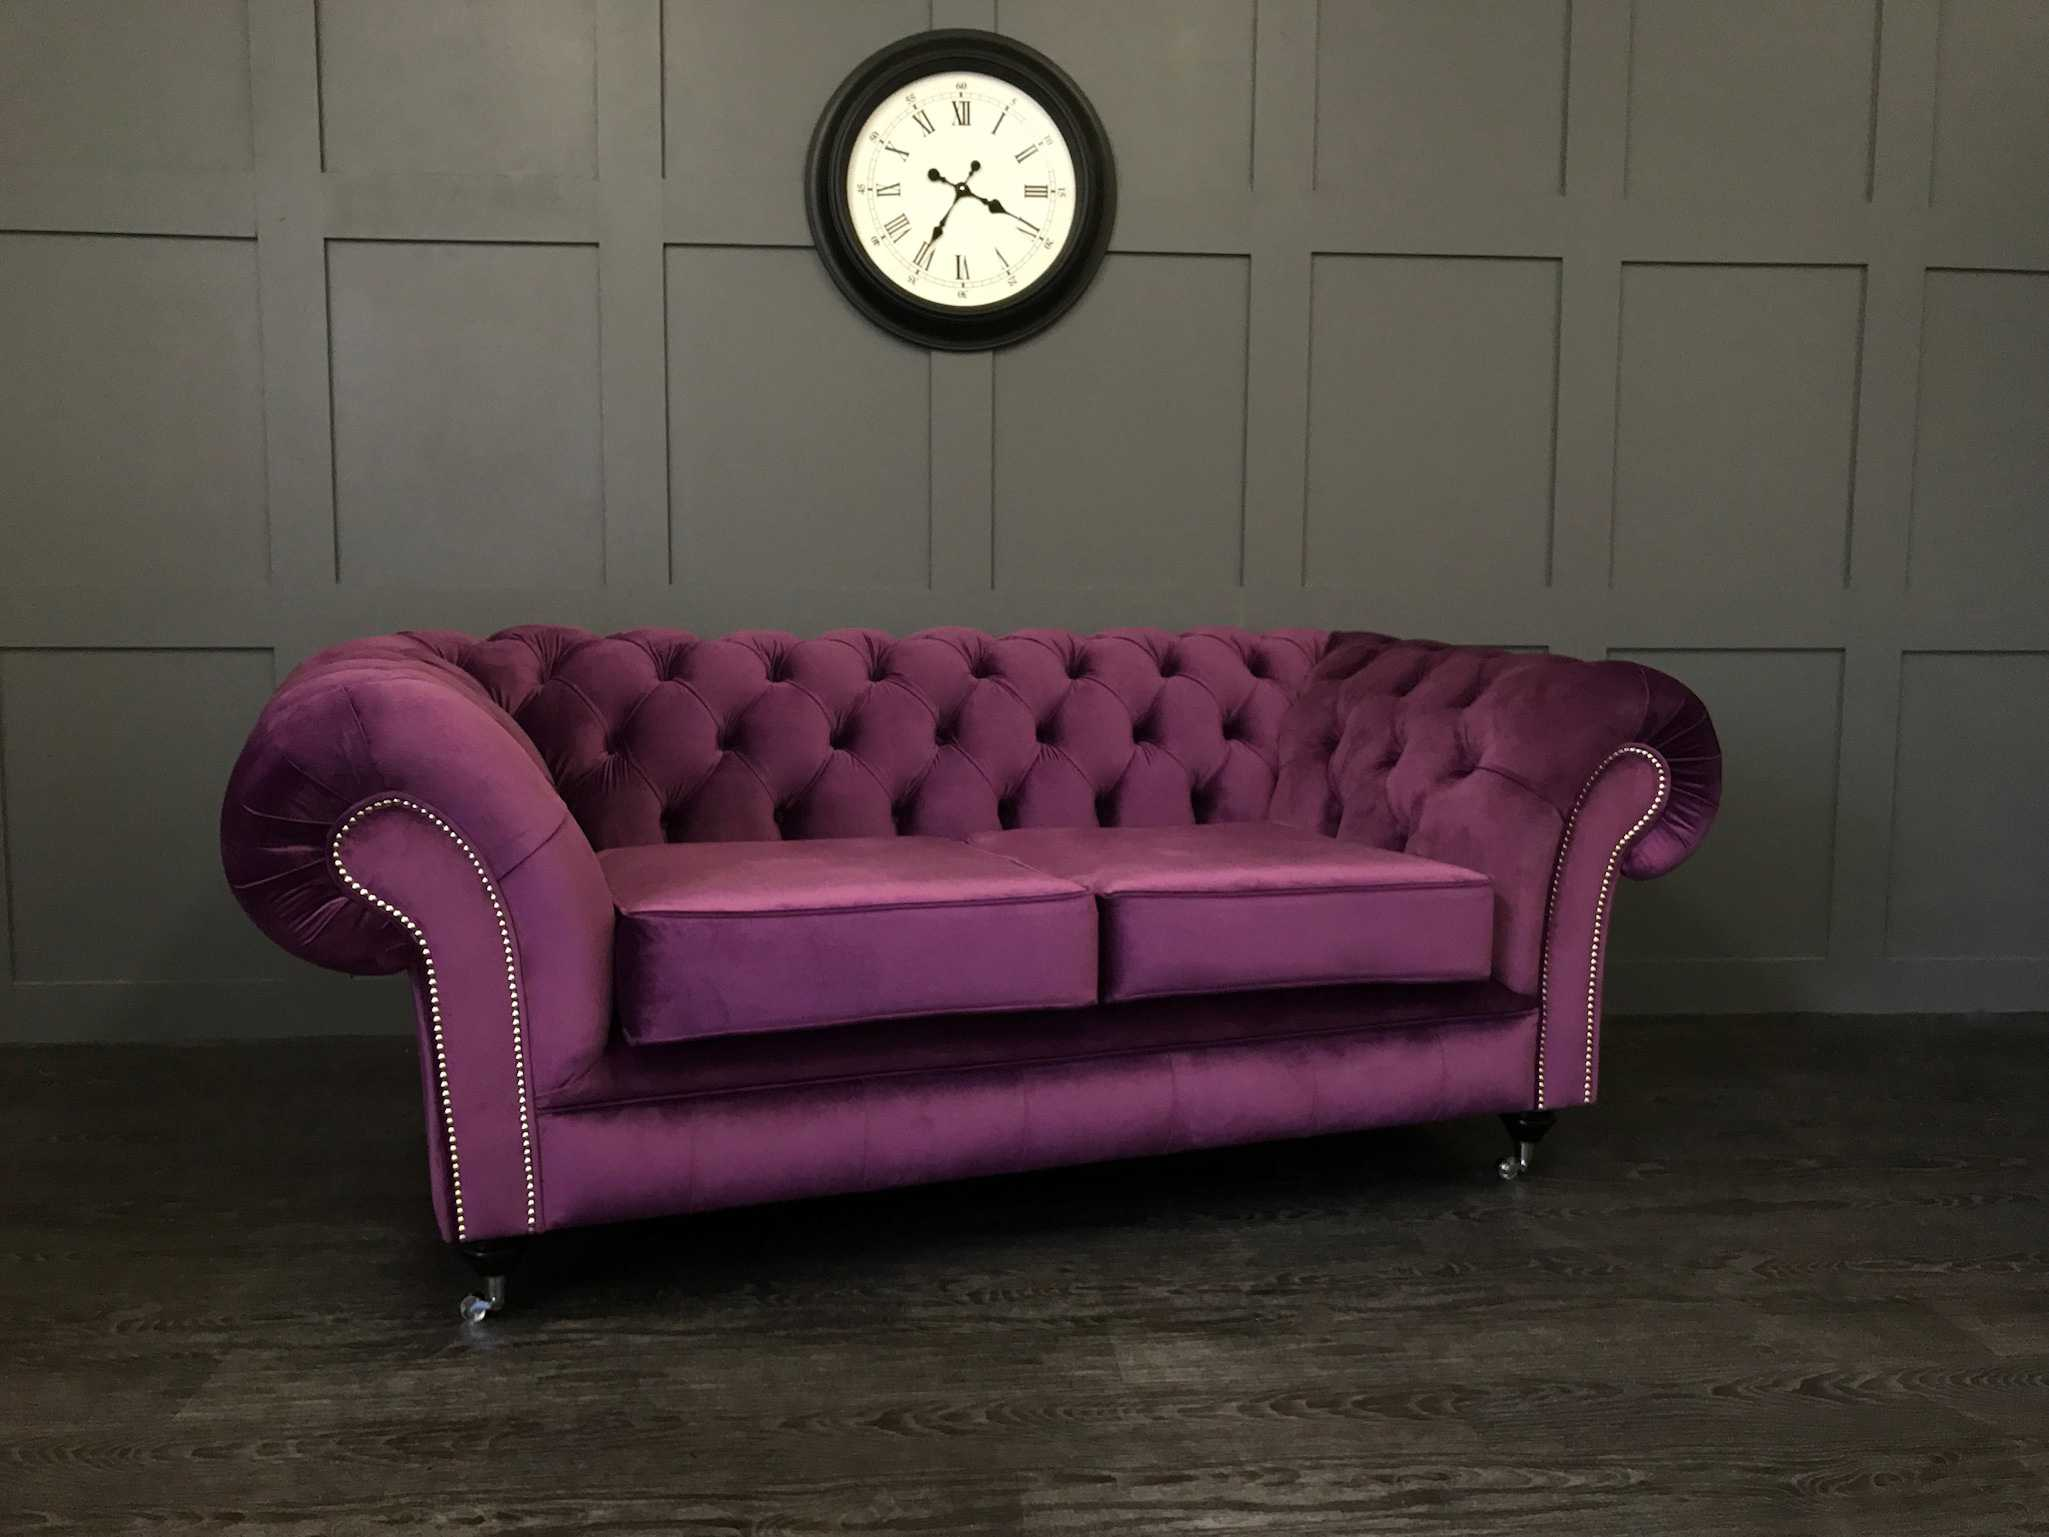 The Manchester Cambio Amethyst